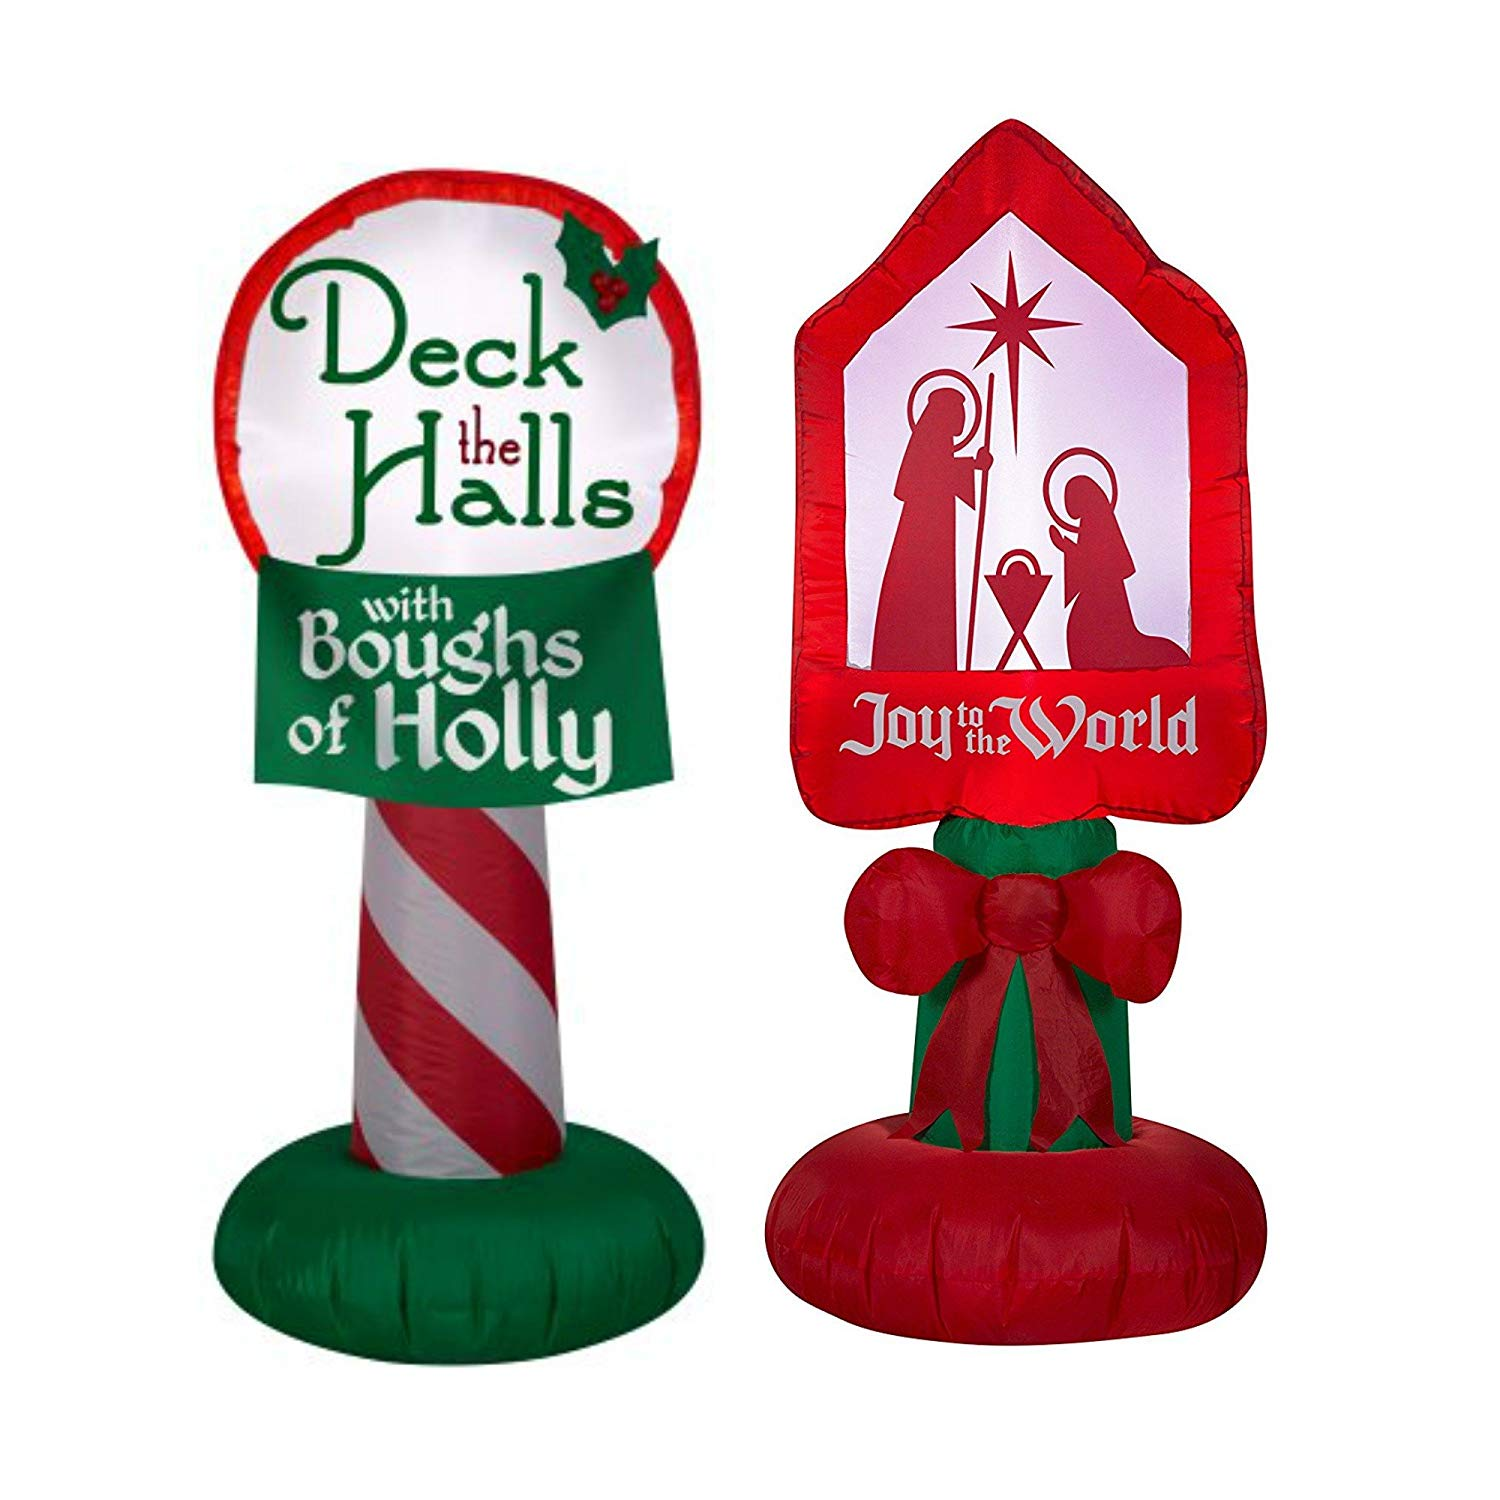 Christmas Nativity Joy To The World Light Up Self Inflatable Yard Decor and Airblown Holiday Inflatable Deck the Halls with Boughs of Holly sign 3.5 ft tall